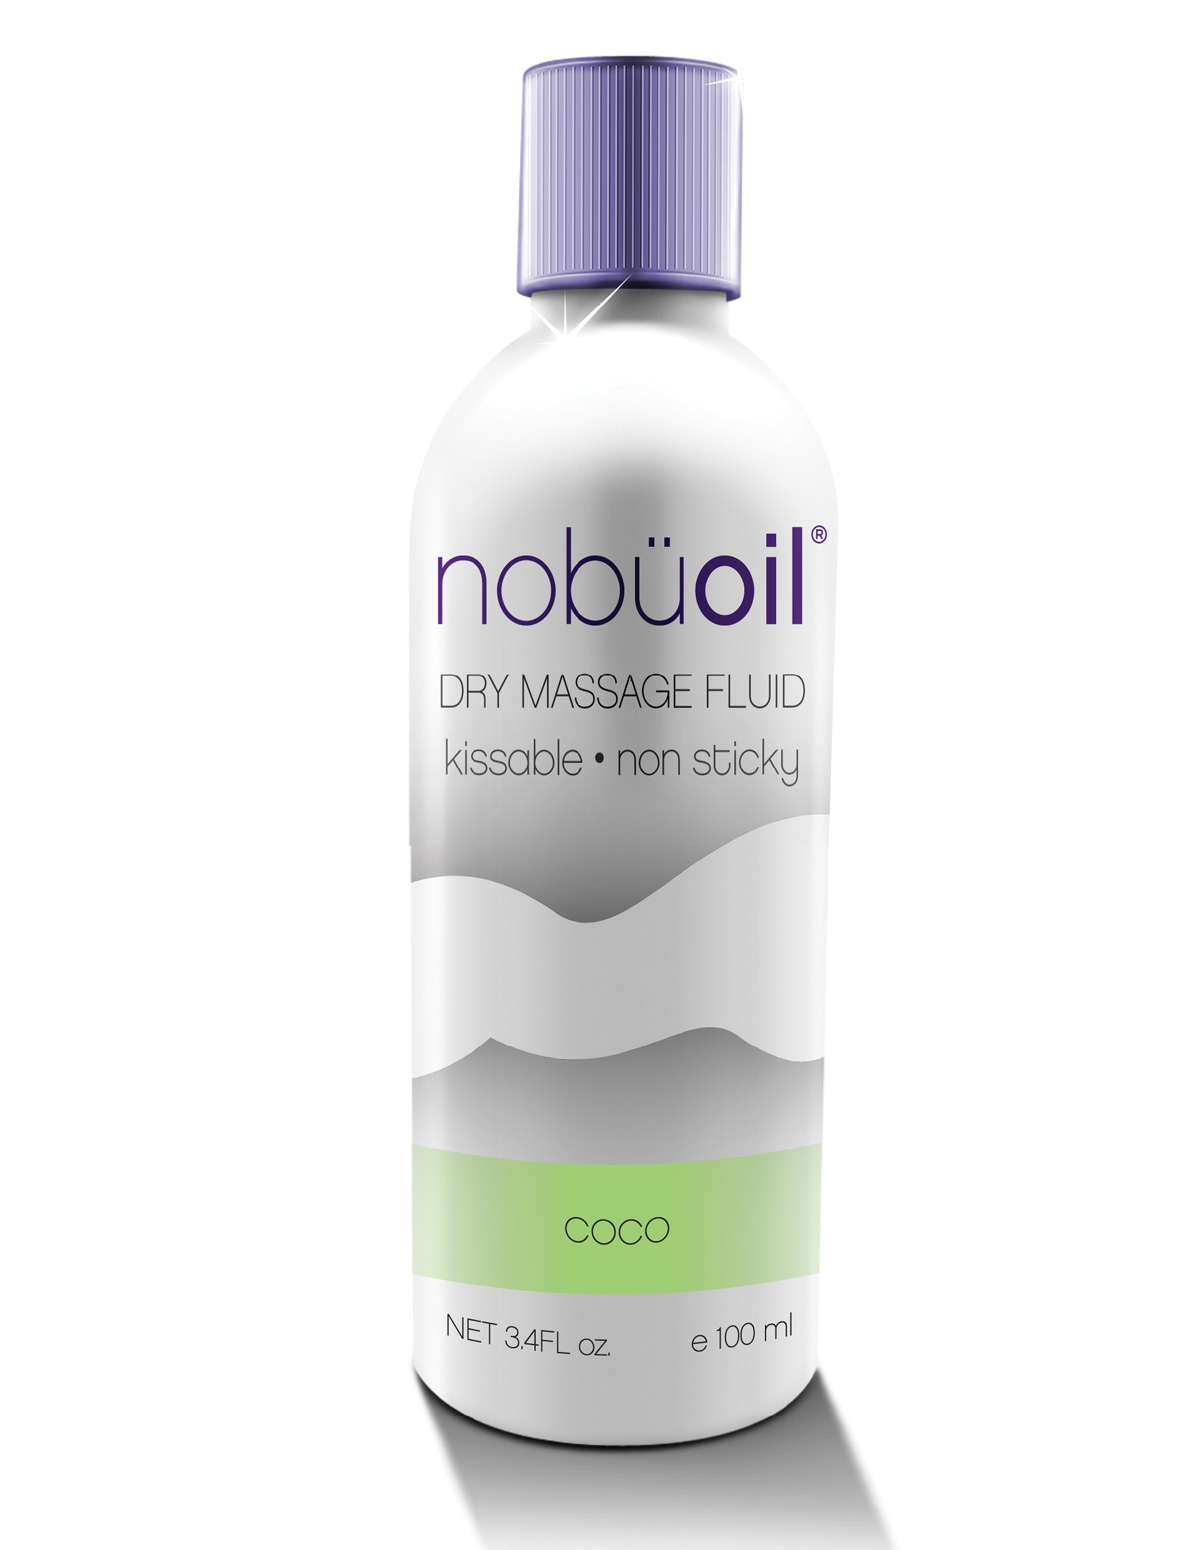 Nobu Premium Dry Massage Oil - Coco